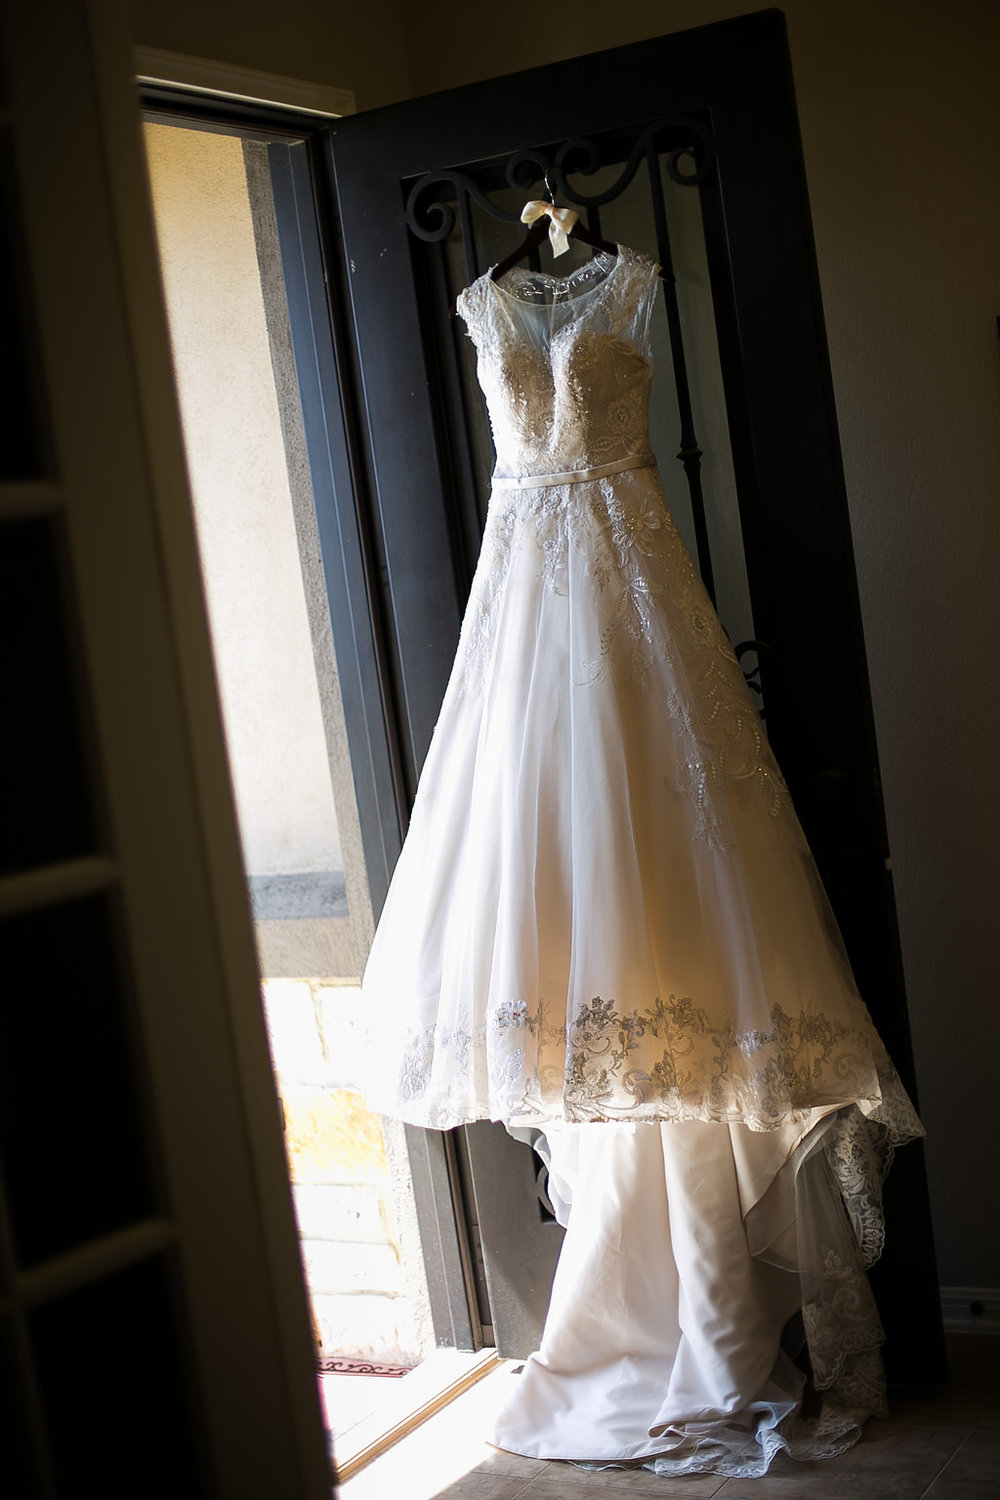 Wedding gown hanging on door